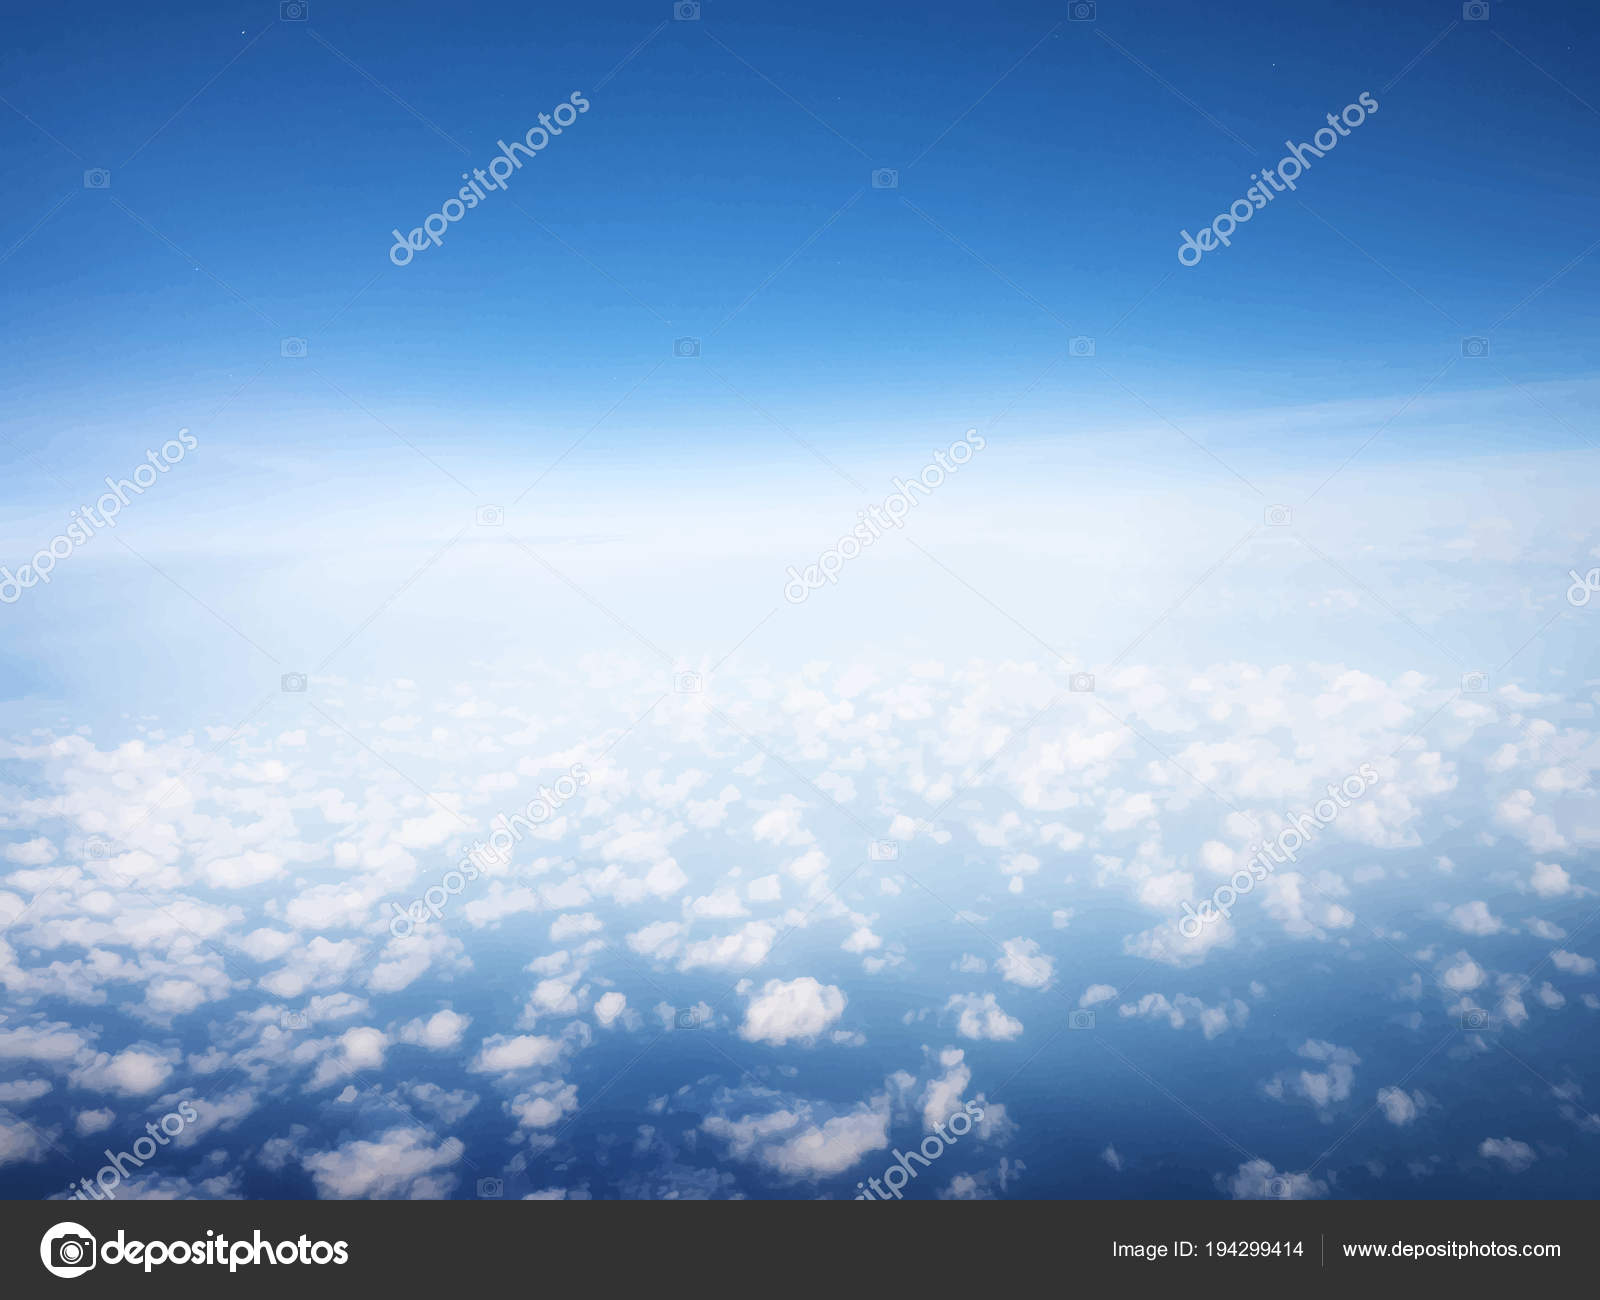 blue sky clouds wallpaper — stock photo © rawpixel #194299414